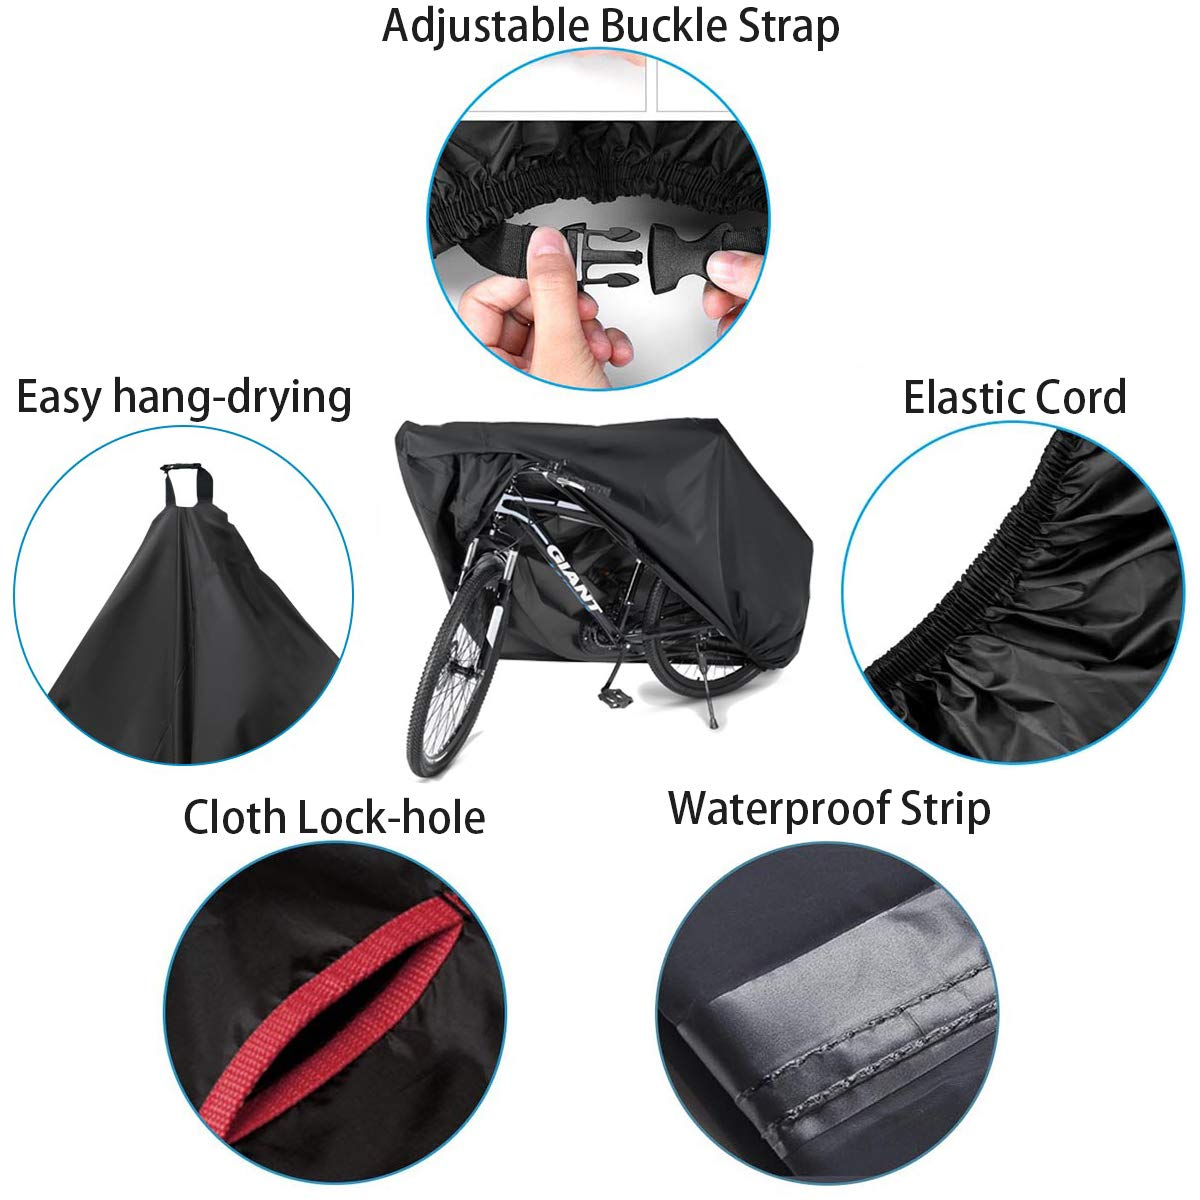 Waterproof Bike Cover 29 Inch Heavy Duty 210D Oxford Bicycle Cover with Double stitching & Heat Sealed Seams, Protection from UV Rain Snow Dust for Mountain Road Electric Bike Hybrid Outdoor Storage by Anglink (Image #7)